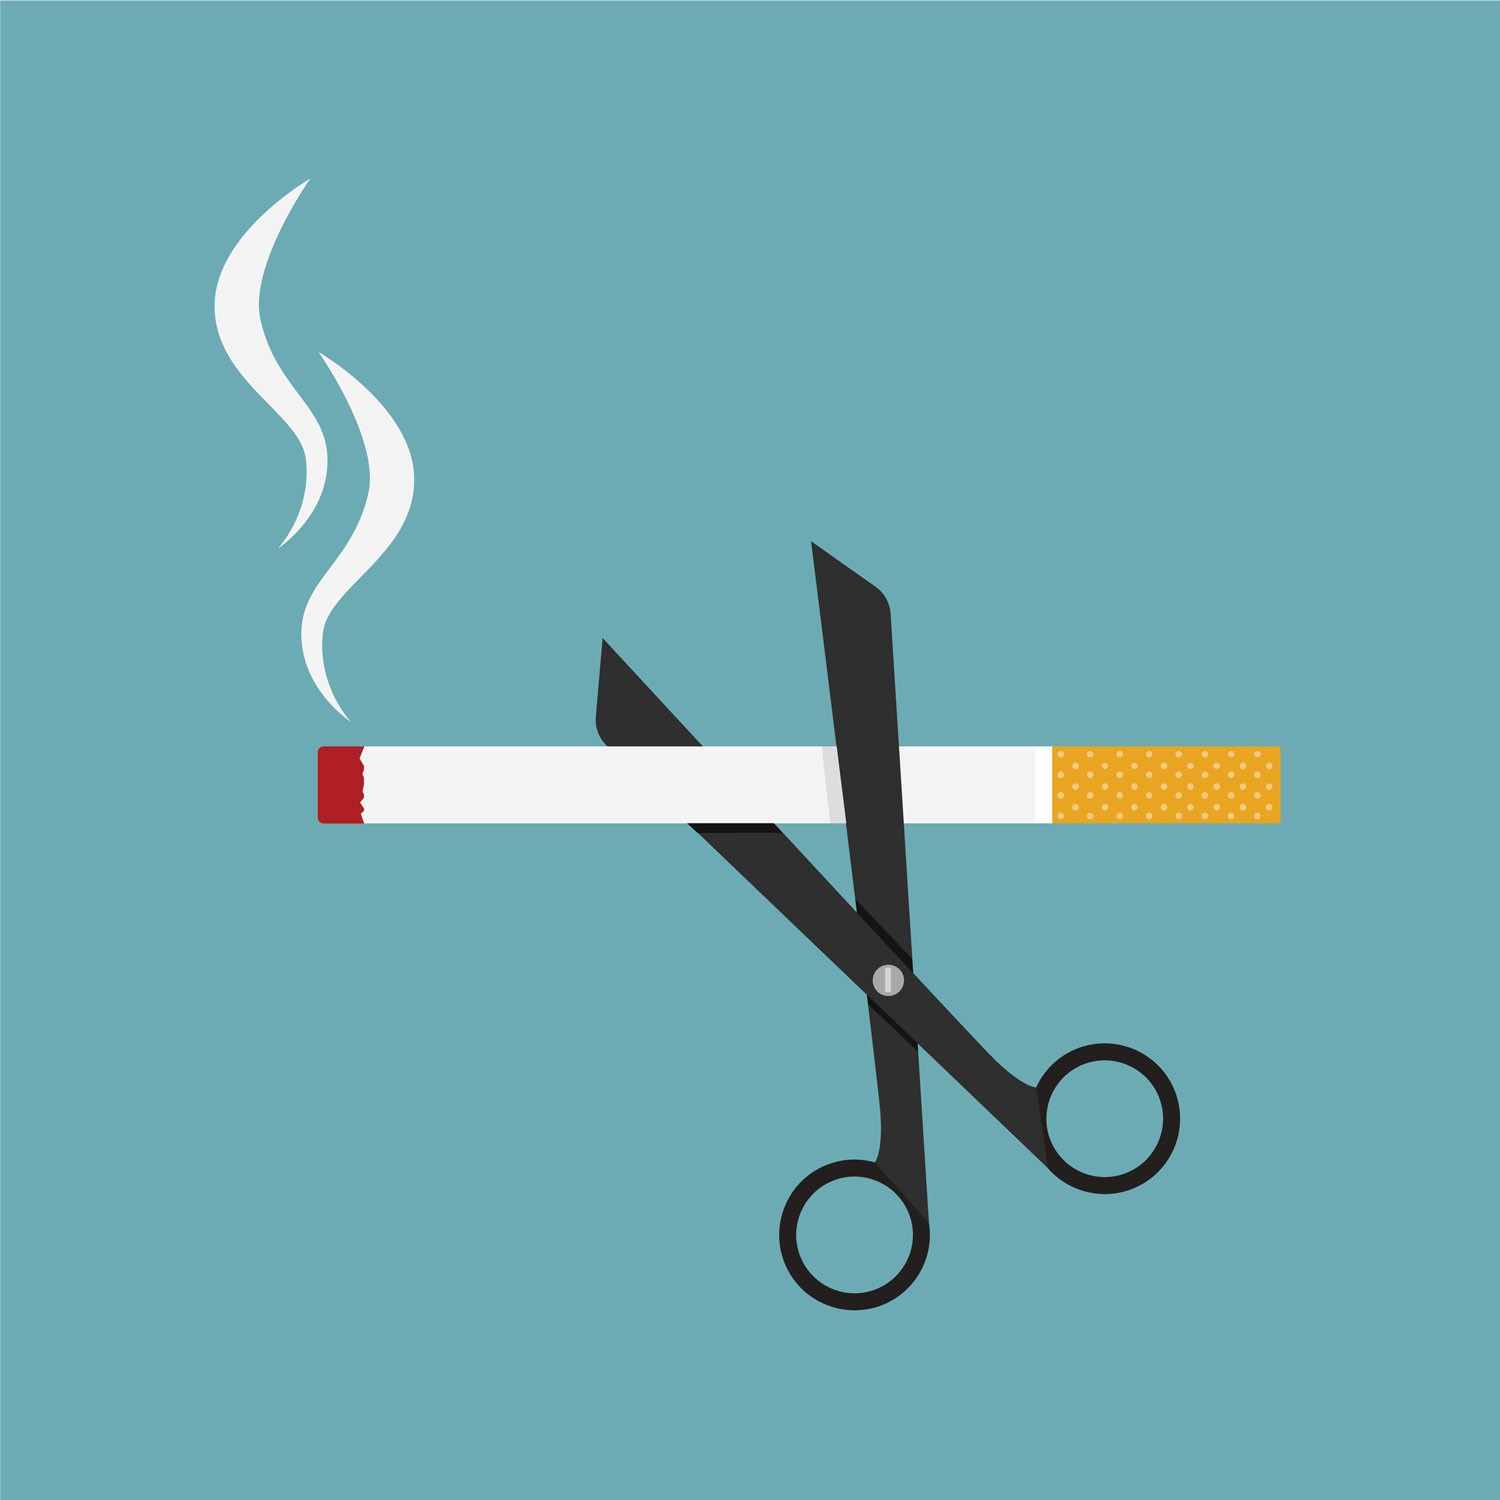 Break the habit of smoking clipart vector library library Breaking bad habits through curiosity - For Life Journal - Medium vector library library